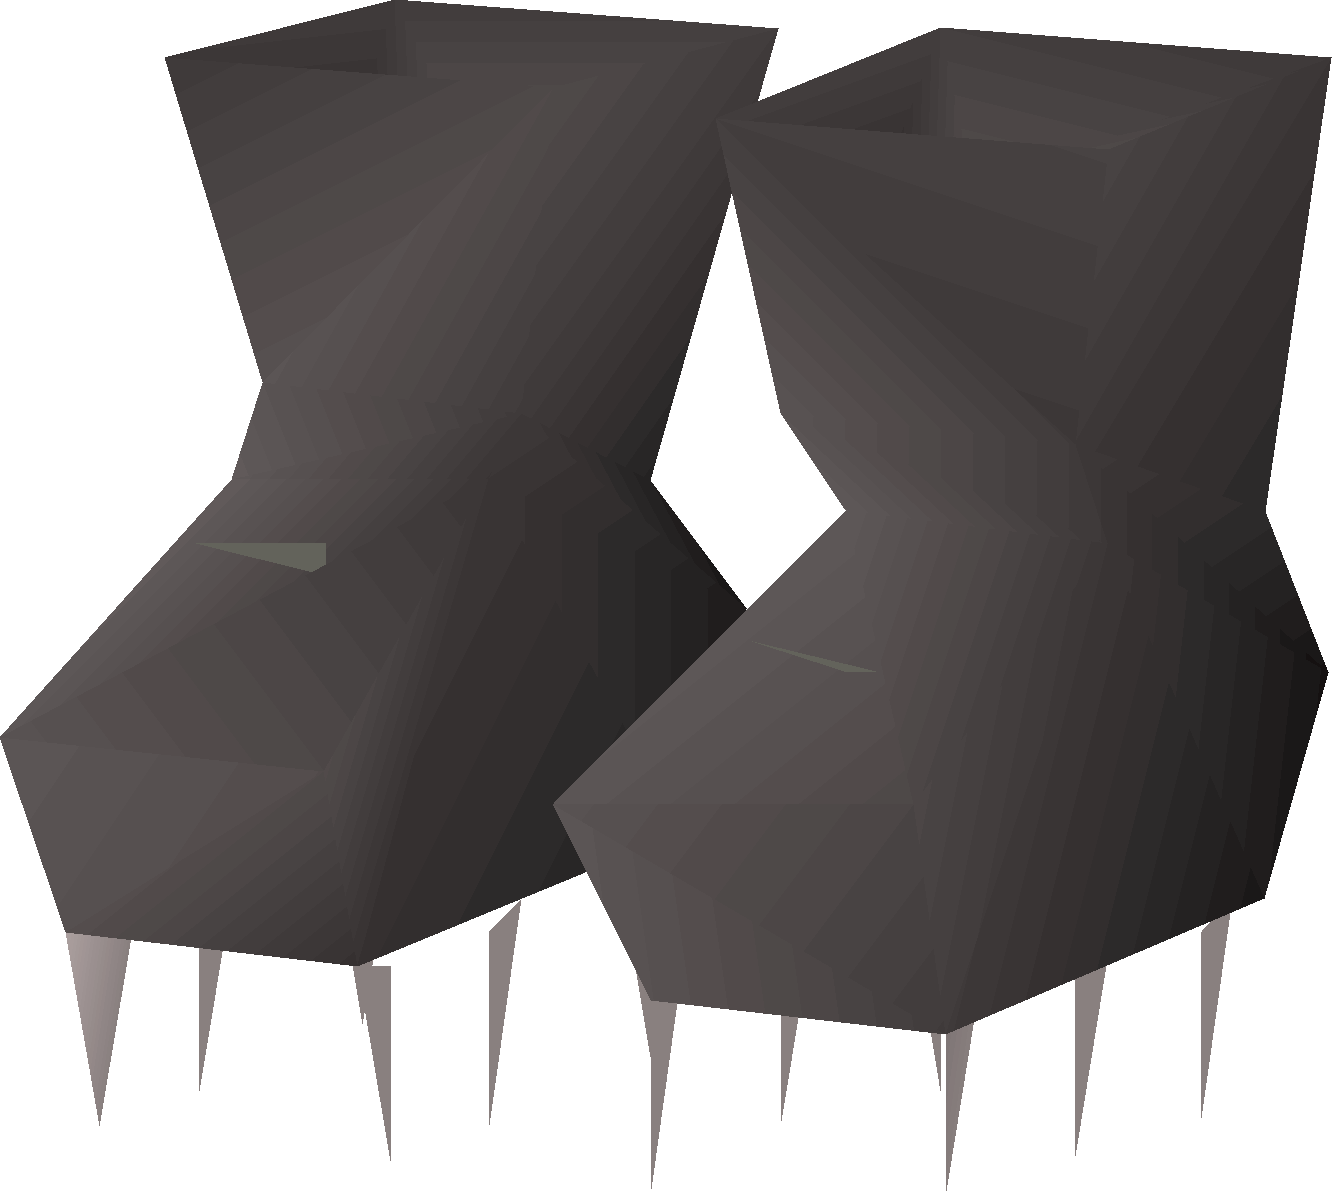 Spiked Boots Osrs Wiki